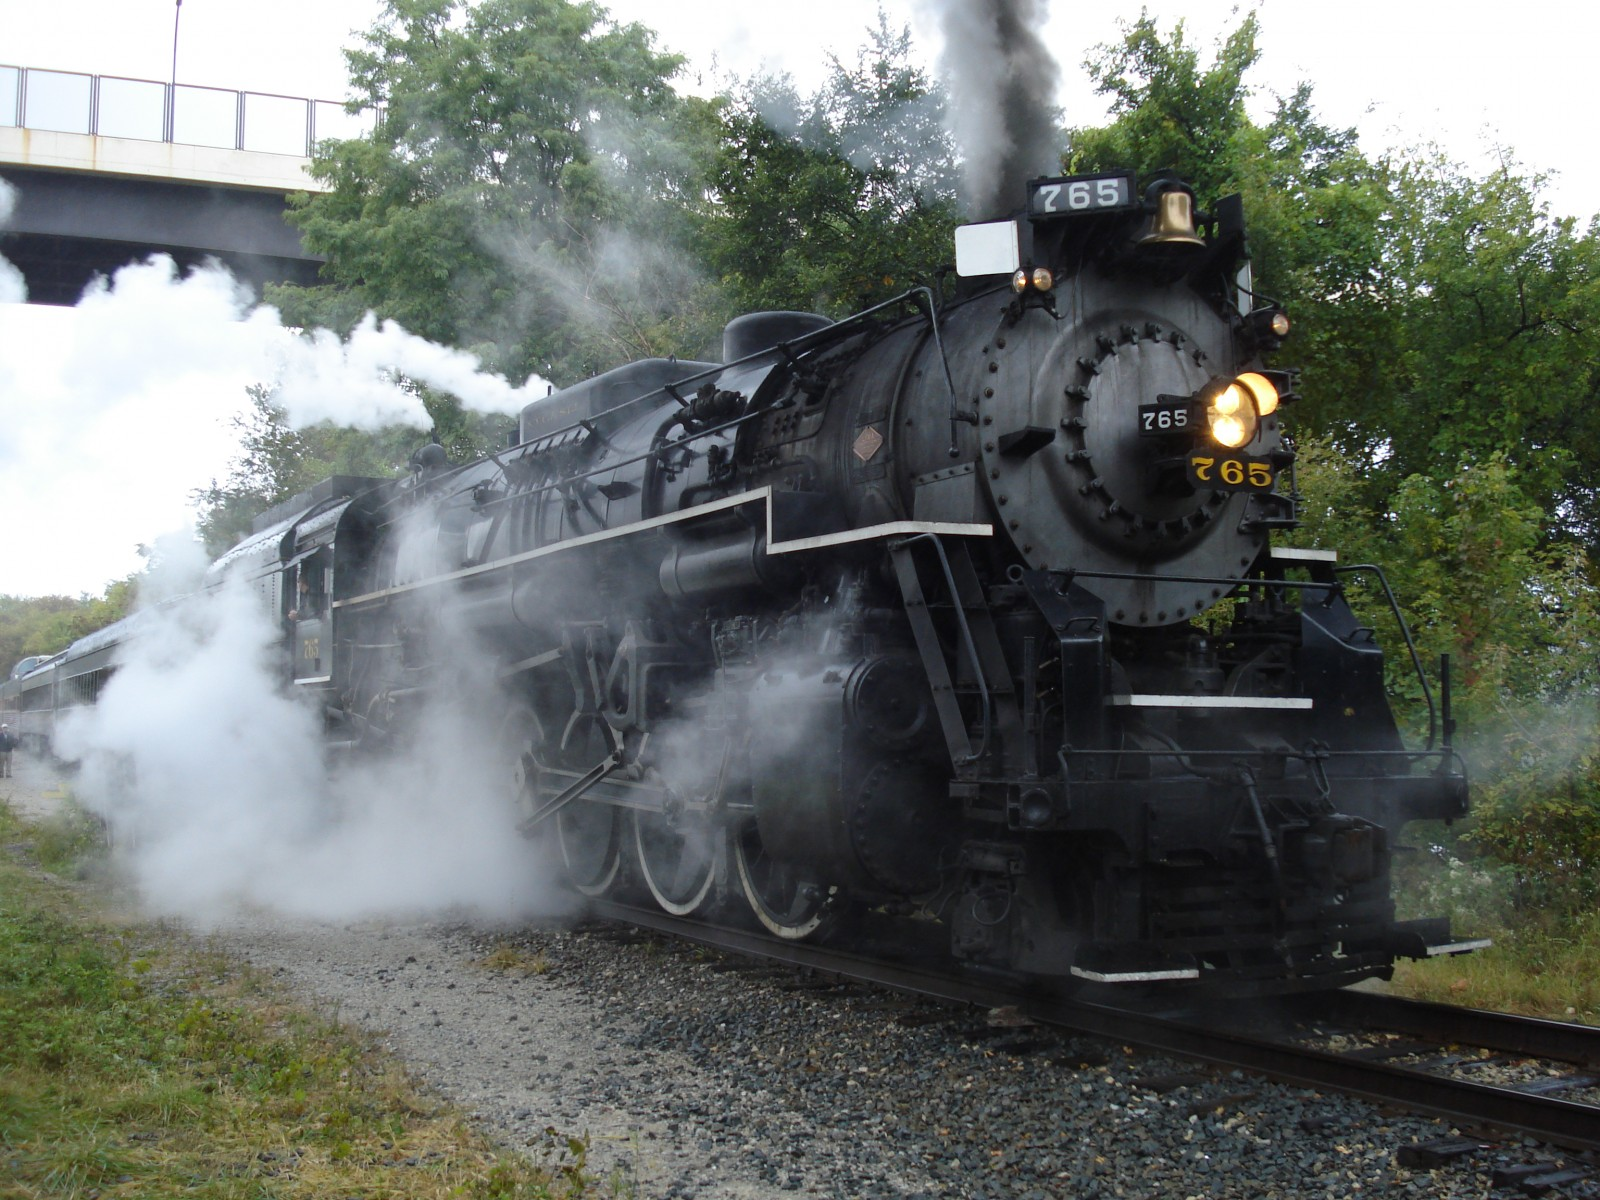 Gas Prices Dayton Ohio >> Retro Muscle: A Closer Look at the Nickel Plate #765 Steam